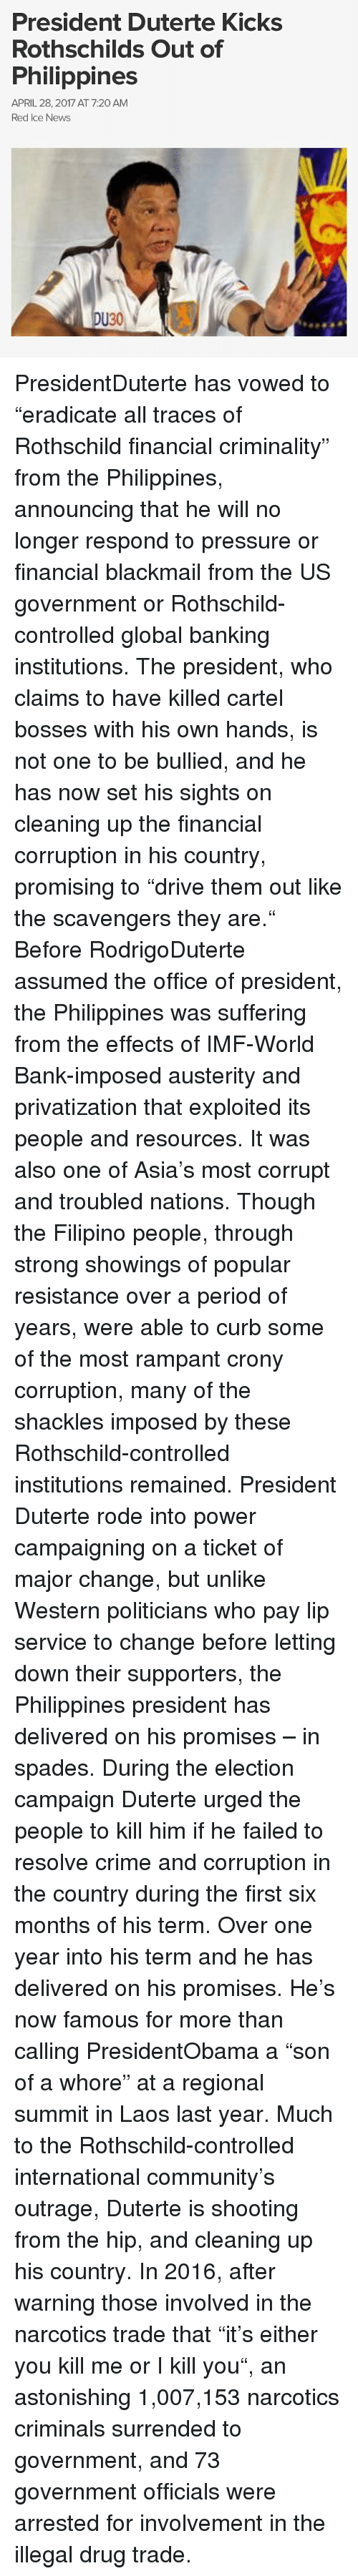 "Duterte: President Duterte Kicks  Rothschilds Out of  Philippines  APRIL 28, 2017 AT 7:20 AM  Red Ice News  DU30 PresidentDuterte has vowed to ""eradicate all traces of Rothschild financial criminality"" from the Philippines, announcing that he will no longer respond to pressure or financial blackmail from the US government or Rothschild-controlled global banking institutions. The president, who claims to have killed cartel bosses with his own hands, is not one to be bullied, and he has now set his sights on cleaning up the financial corruption in his country, promising to ""drive them out like the scavengers they are."" Before RodrigoDuterte assumed the office of president, the Philippines was suffering from the effects of IMF-World Bank-imposed austerity and privatization that exploited its people and resources. It was also one of Asia's most corrupt and troubled nations. Though the Filipino people, through strong showings of popular resistance over a period of years, were able to curb some of the most rampant crony corruption, many of the shackles imposed by these Rothschild-controlled institutions remained. President Duterte rode into power campaigning on a ticket of major change, but unlike Western politicians who pay lip service to change before letting down their supporters, the Philippines president has delivered on his promises – in spades. During the election campaign Duterte urged the people to kill him if he failed to resolve crime and corruption in the country during the first six months of his term. Over one year into his term and he has delivered on his promises. He's now famous for more than calling PresidentObama a ""son of a whore"" at a regional summit in Laos last year. Much to the Rothschild-controlled international community's outrage, Duterte is shooting from the hip, and cleaning up his country. In 2016, after warning those involved in the narcotics trade that ""it's either you kill me or I kill you"", an astonishing 1,007,153 narcotics criminals surrended to government, and 73 government officials were arrested for involvement in the illegal drug trade."